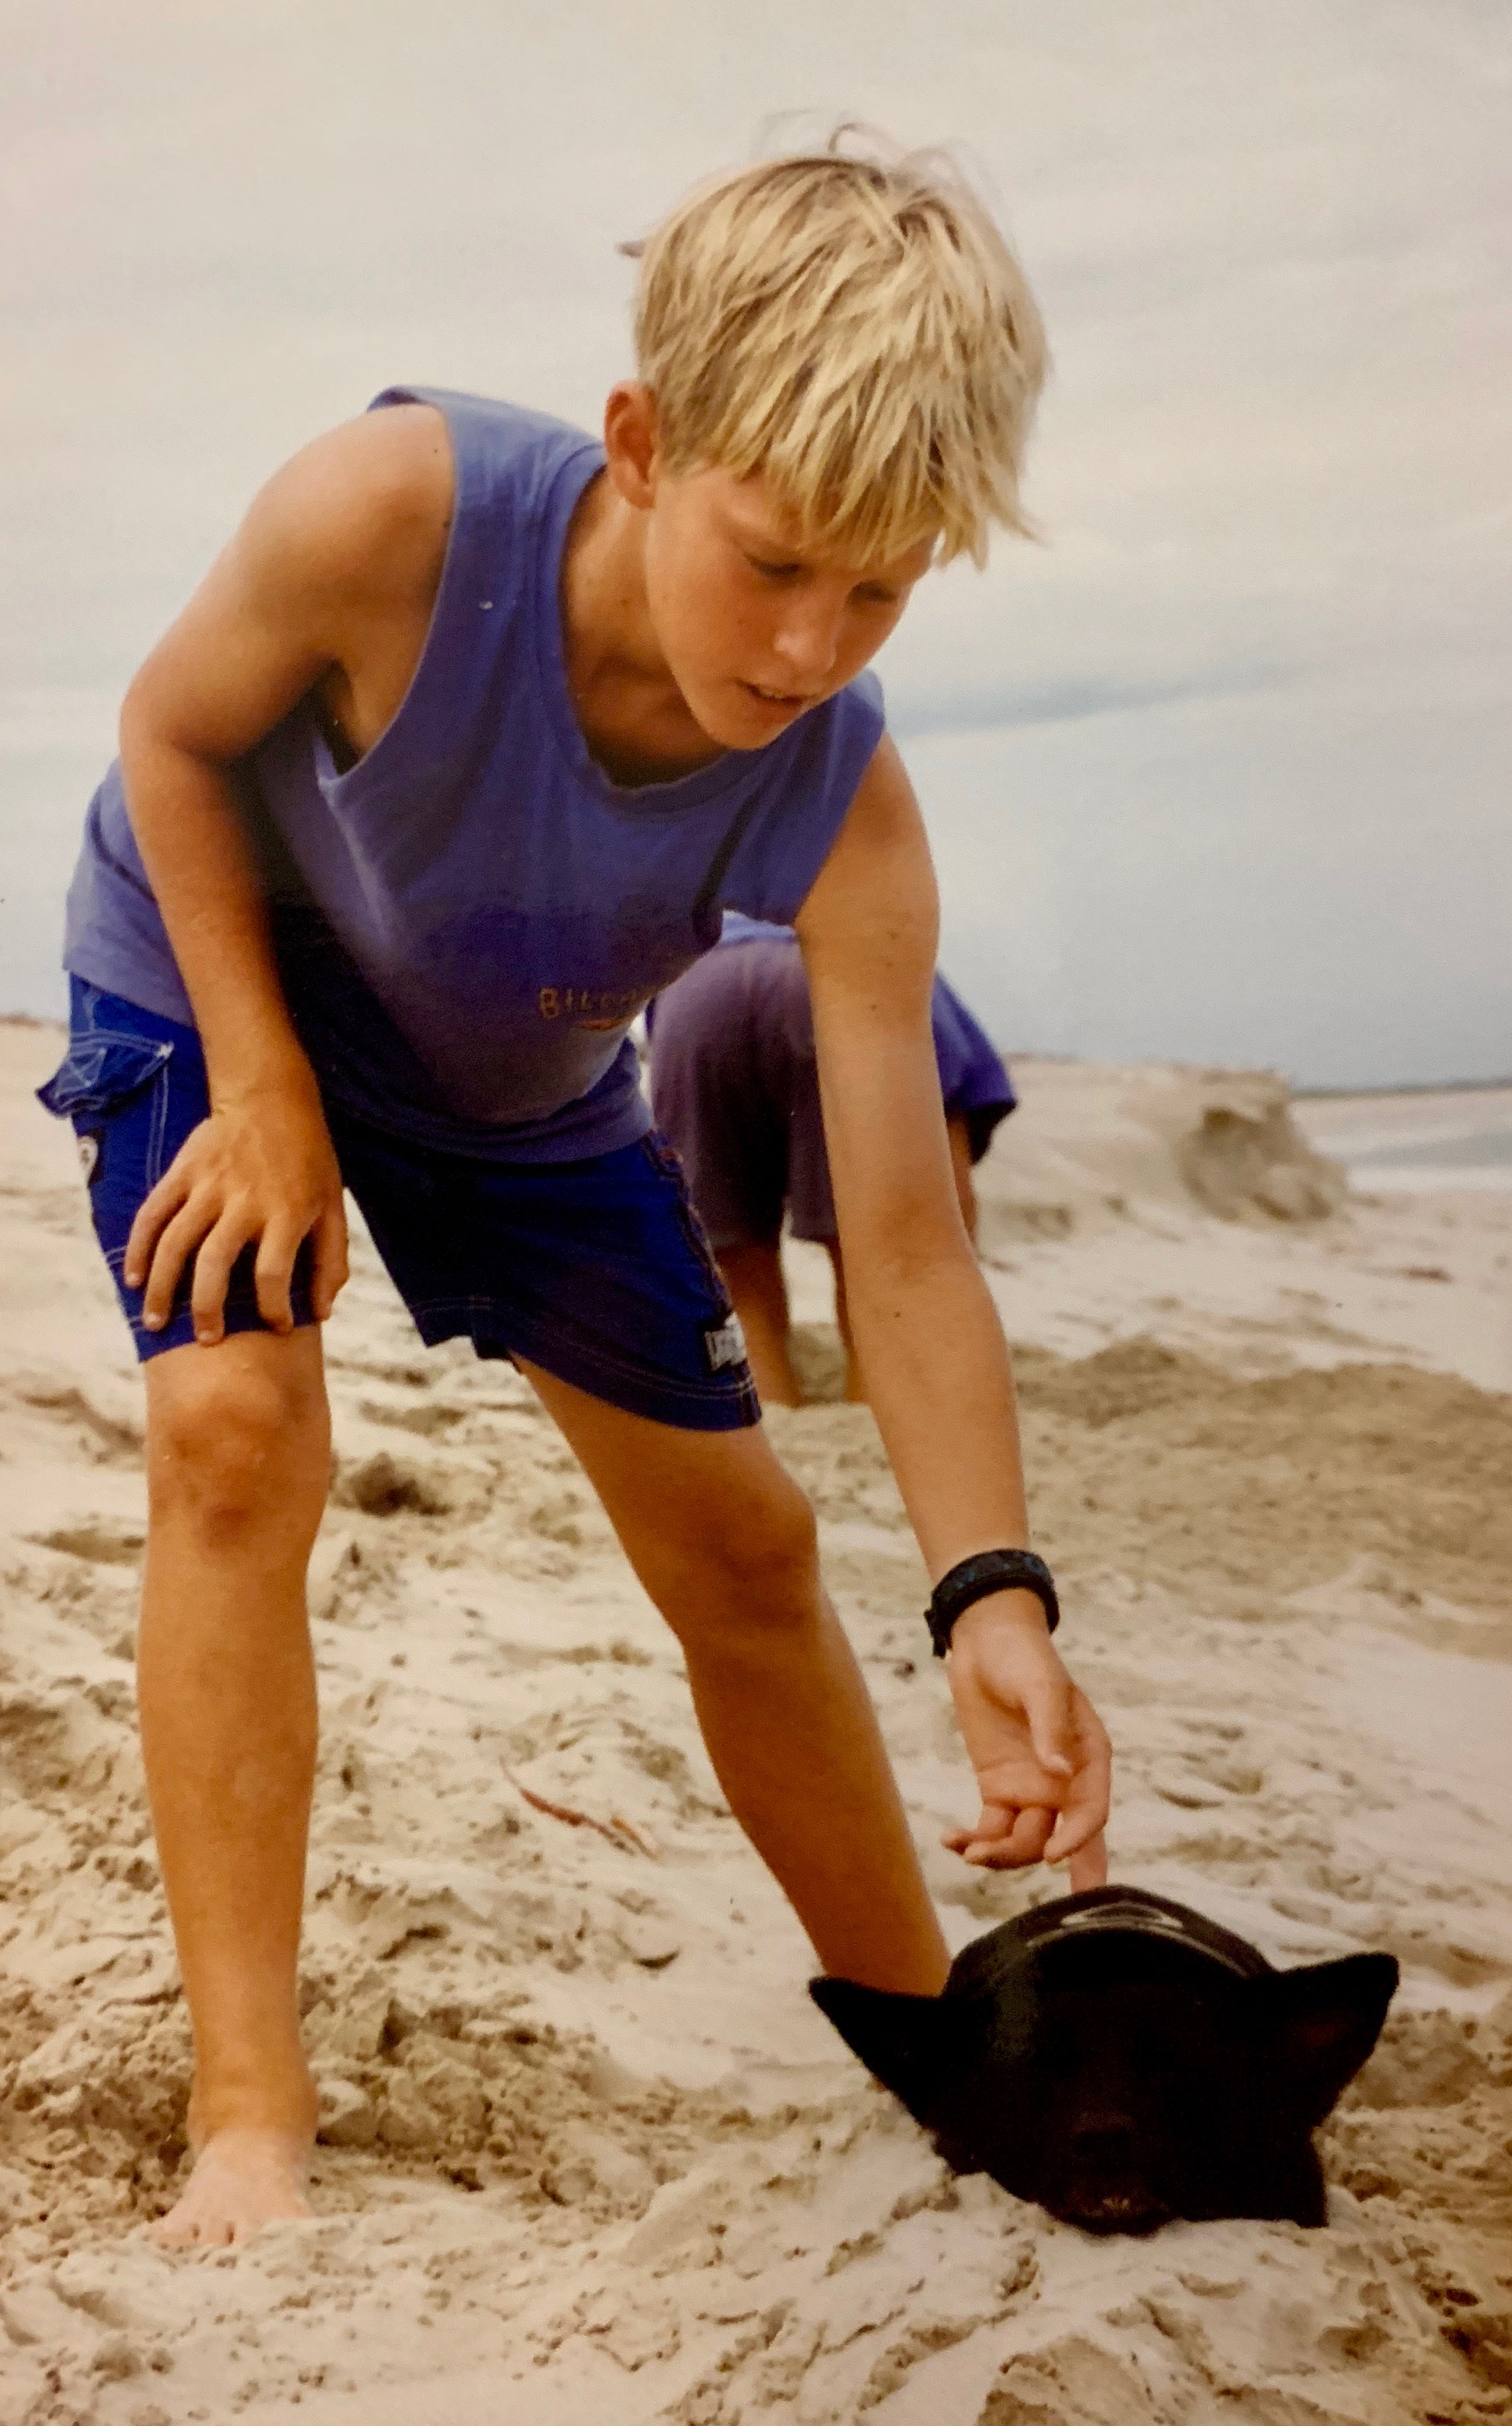 Me (aged 12) on a beach north of Broome with my best mate, a kelpie named Sooty